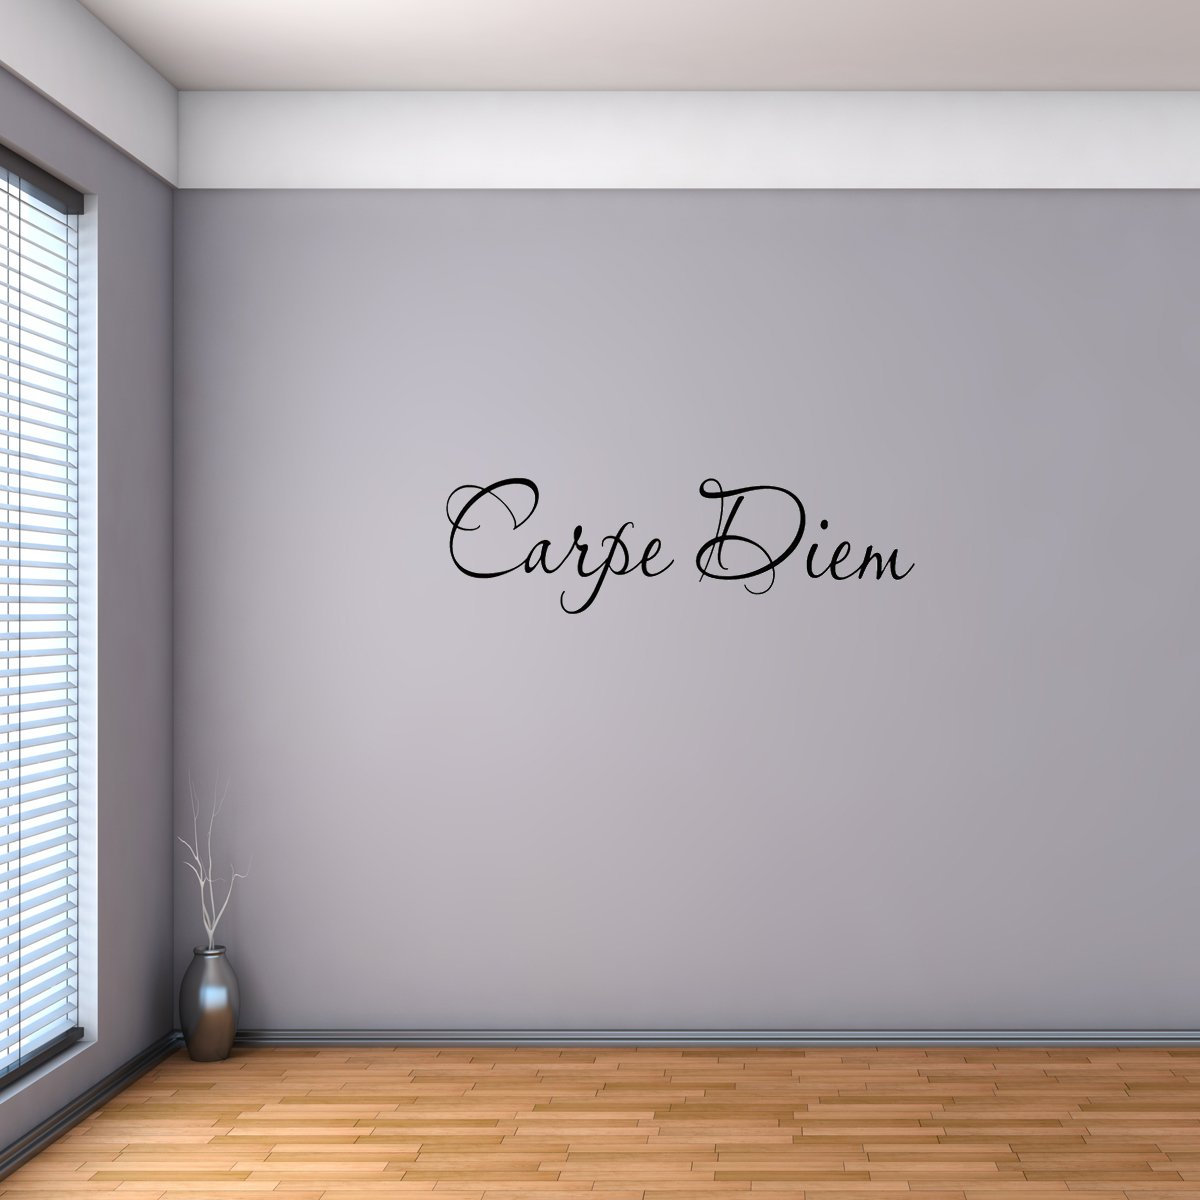 VWAQ Carpe Diem Wall Quotes Decal Seize the Day Quotes - VWAQ Vinyl Wall Art Quotes and Prints